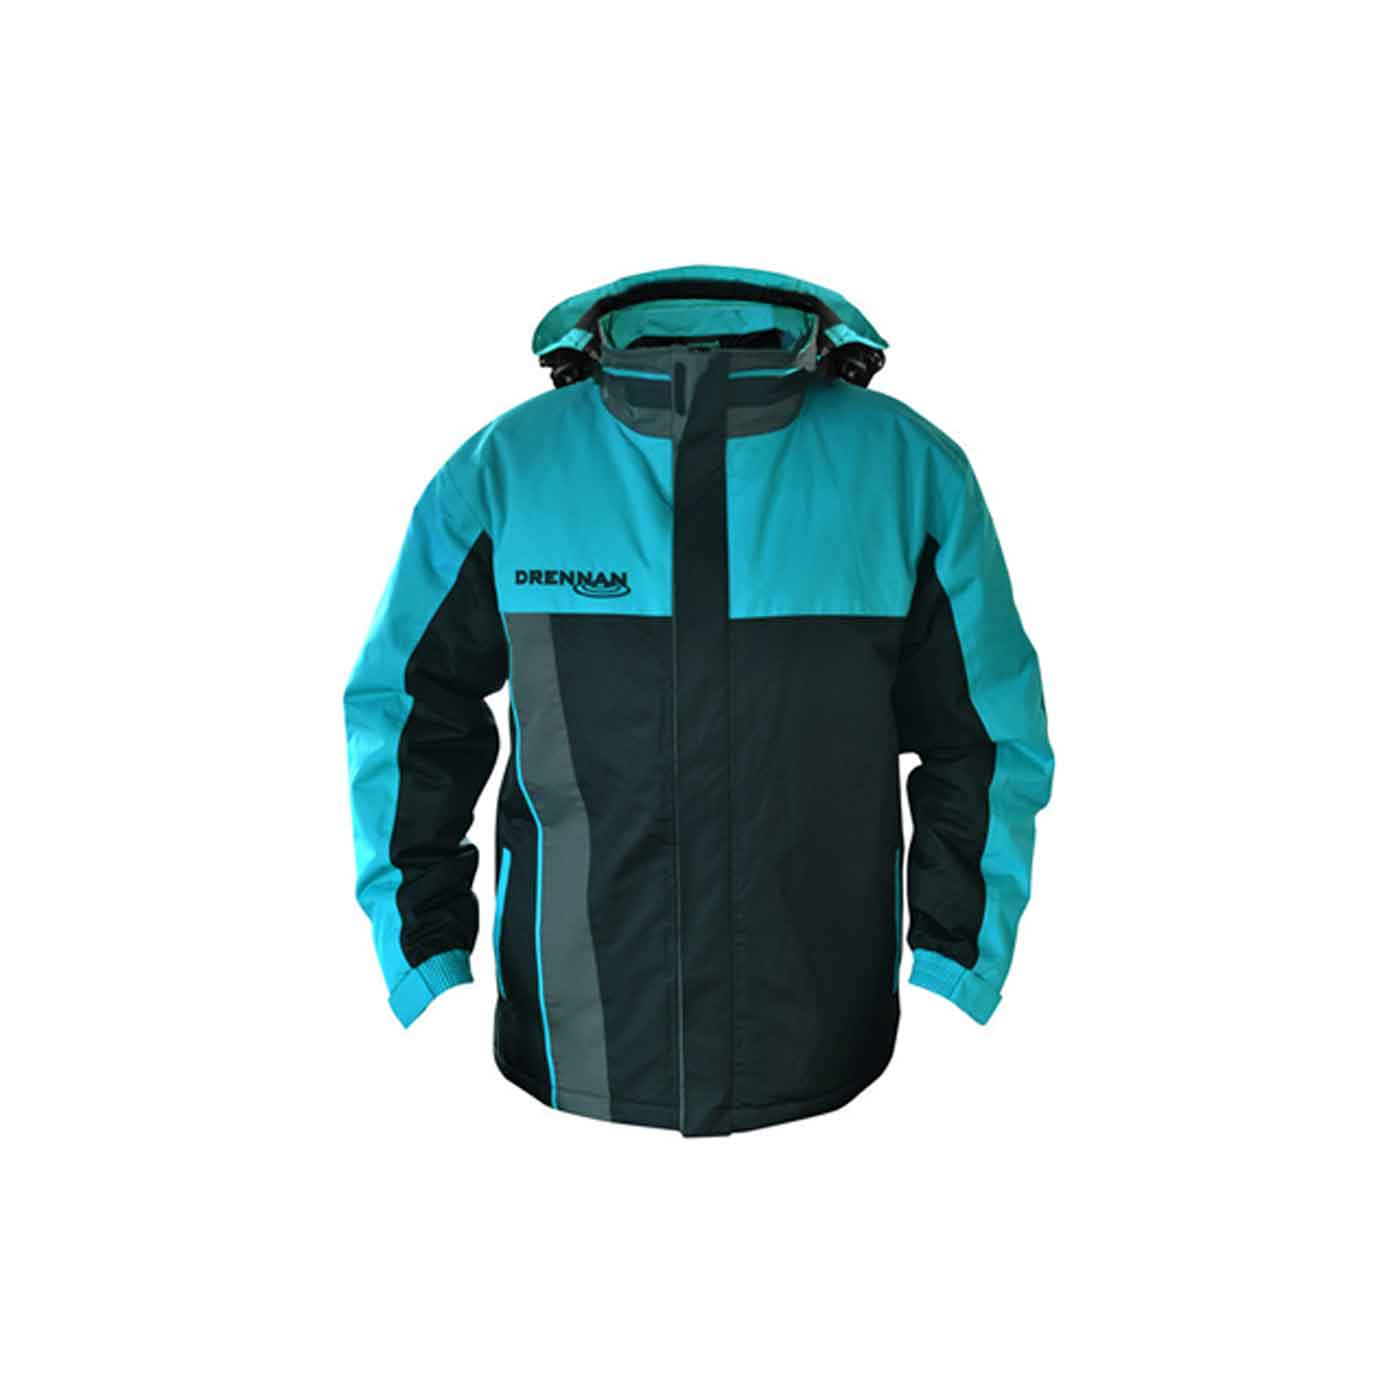 Drennan Quilted Waterproof Jacket